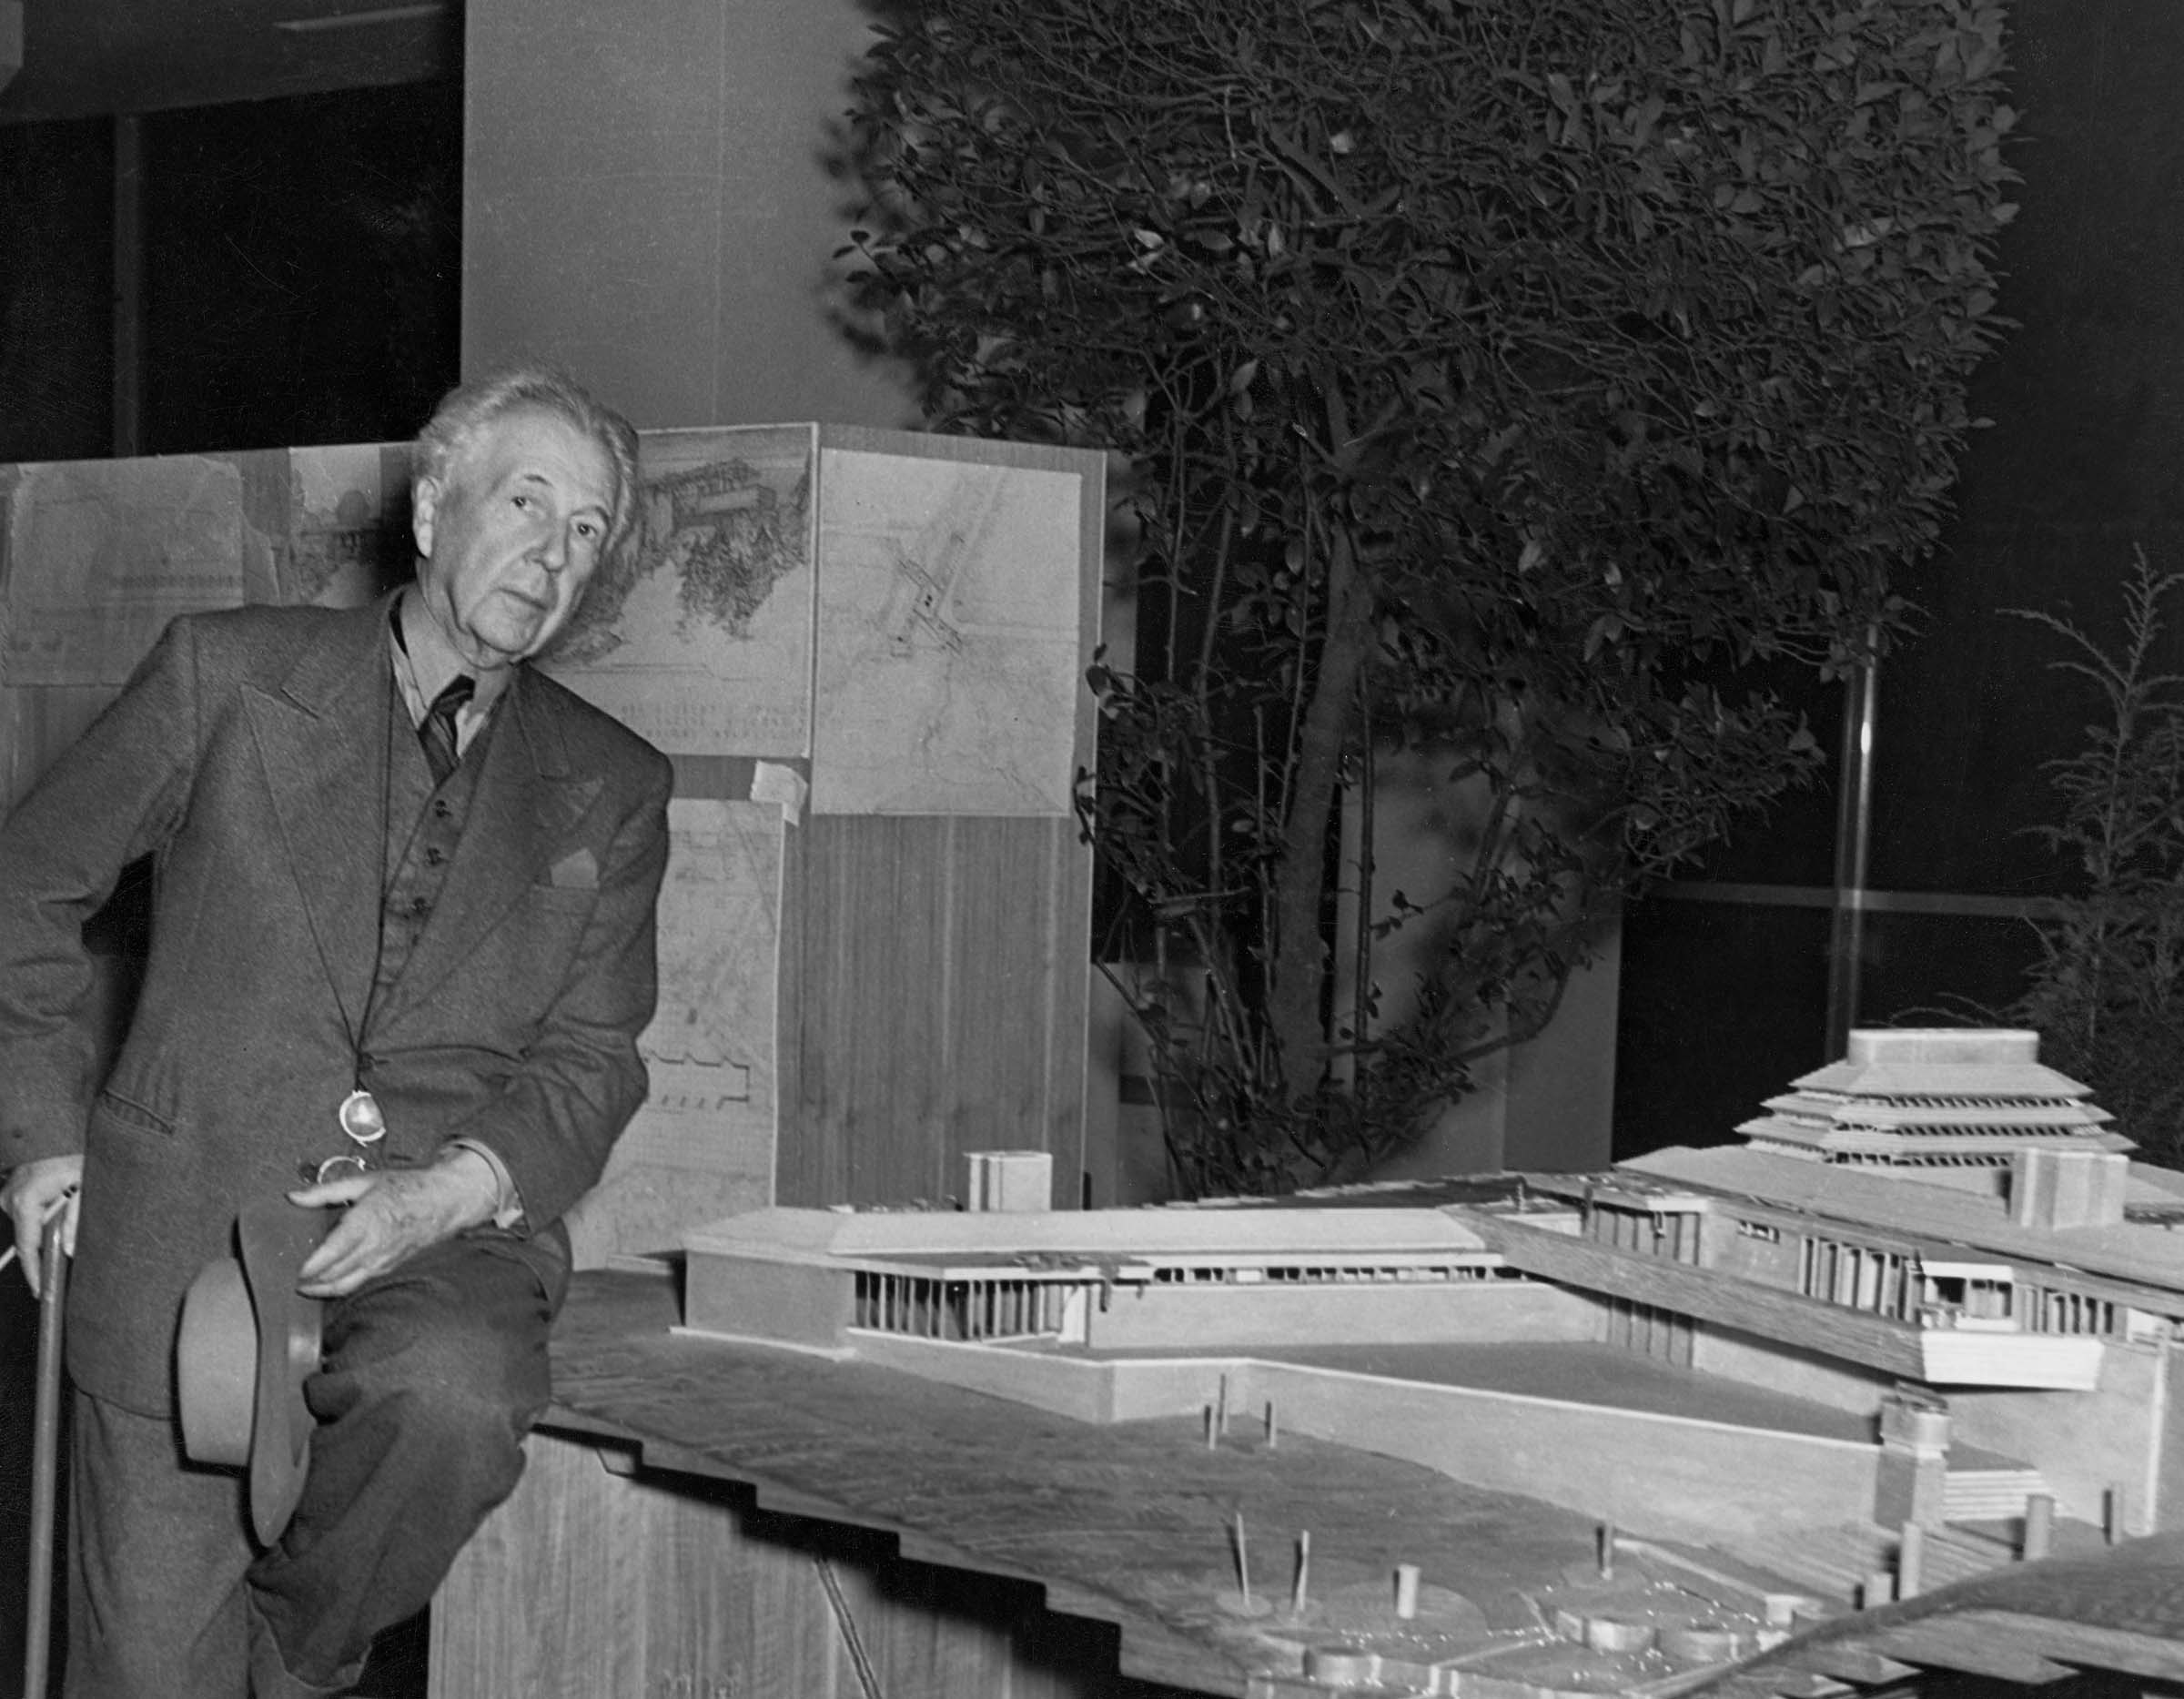 MoMA & Columbia acquire Frank Lloyd Wright archives